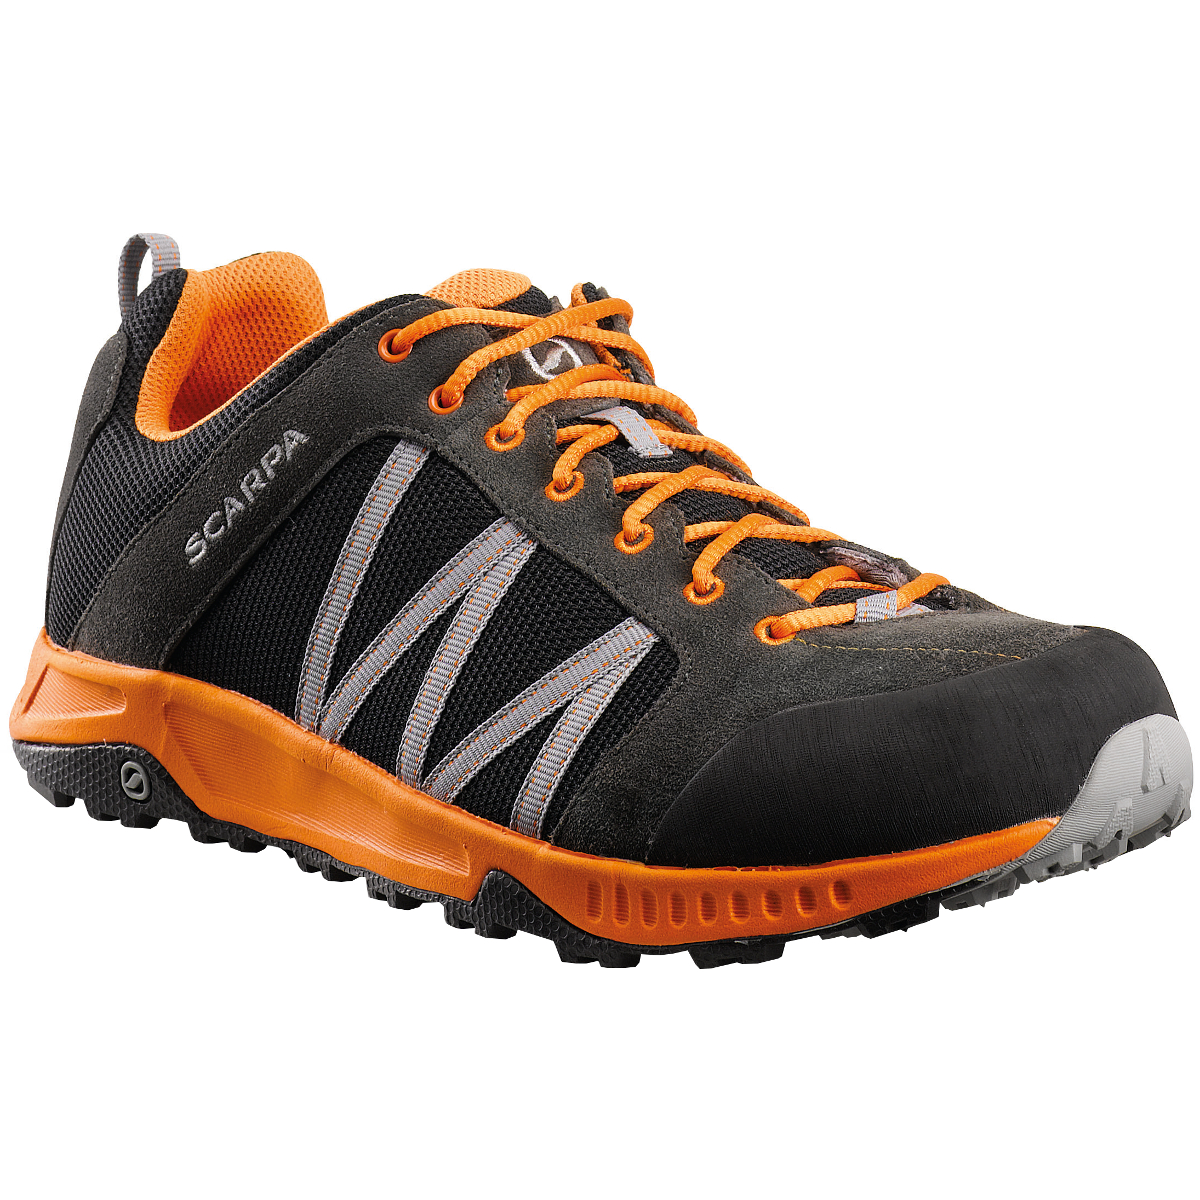 Scarpa - Rapid Black-Orange - Trailrunning Shoes - 41